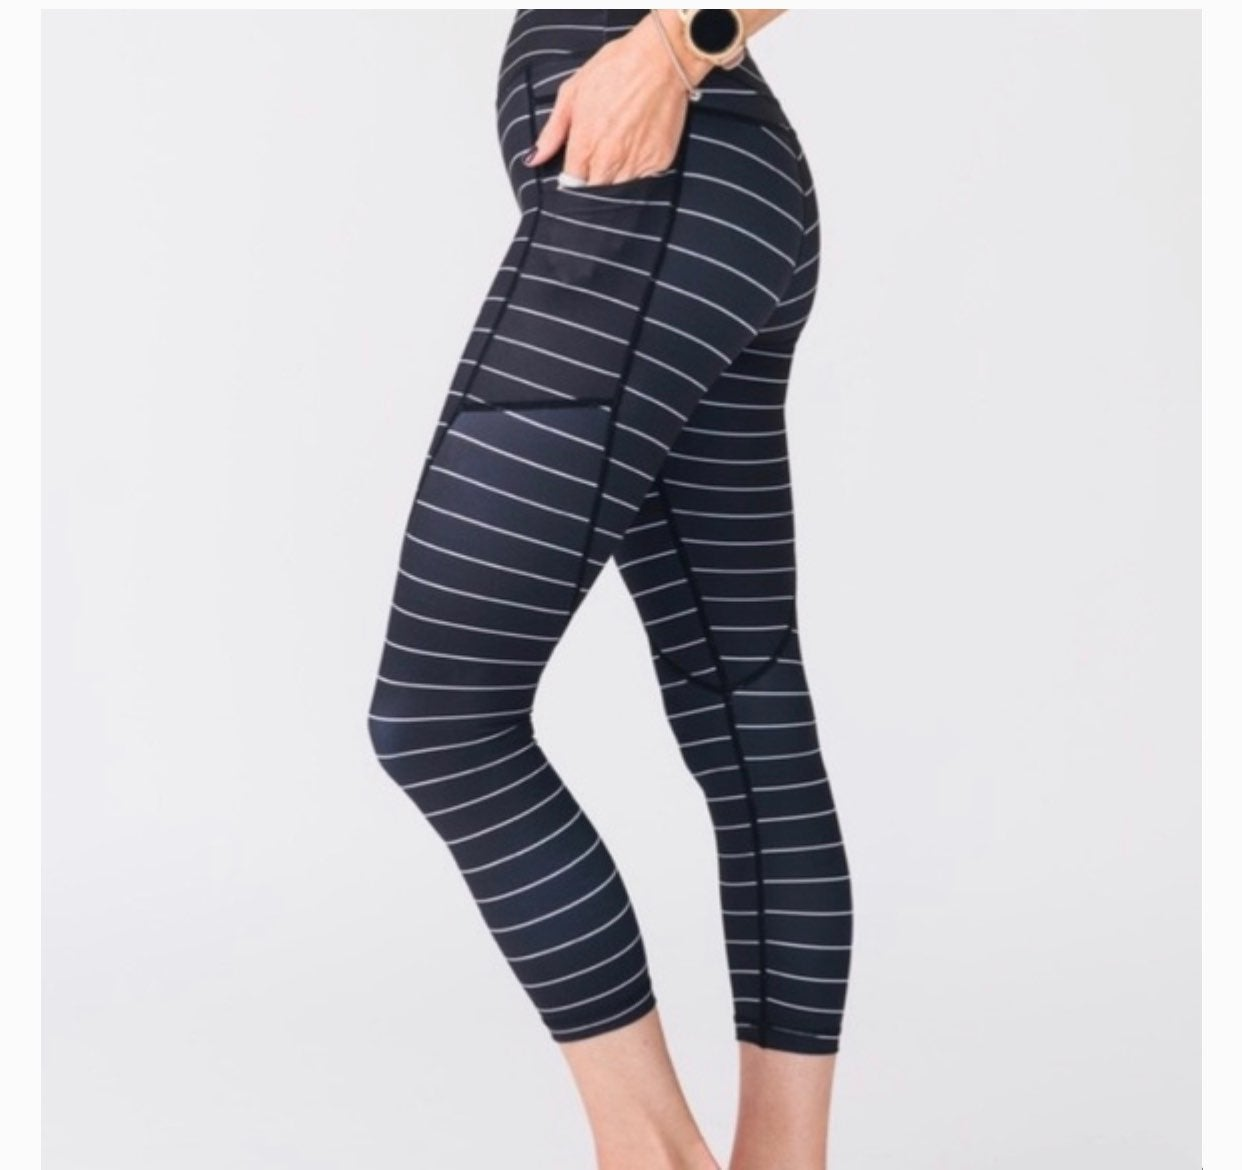 Zyia light and tight stripped Leggings 4